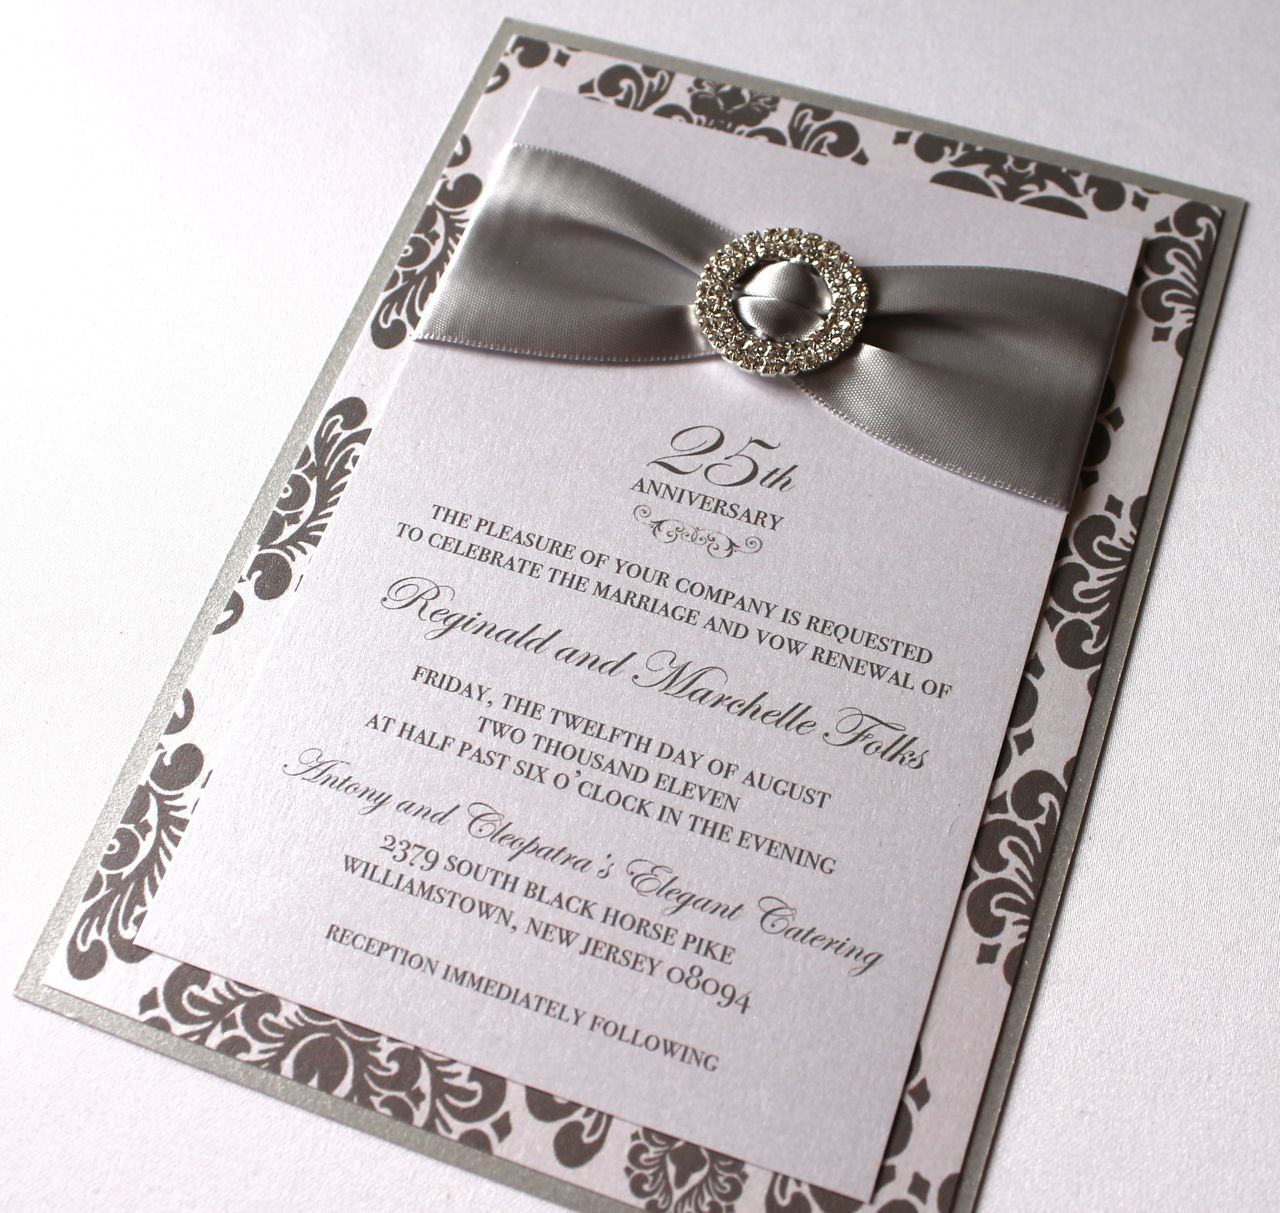 Wedding Invitation Ideas: Embellished Paperie: 25th Anniversary Invitations, Silver